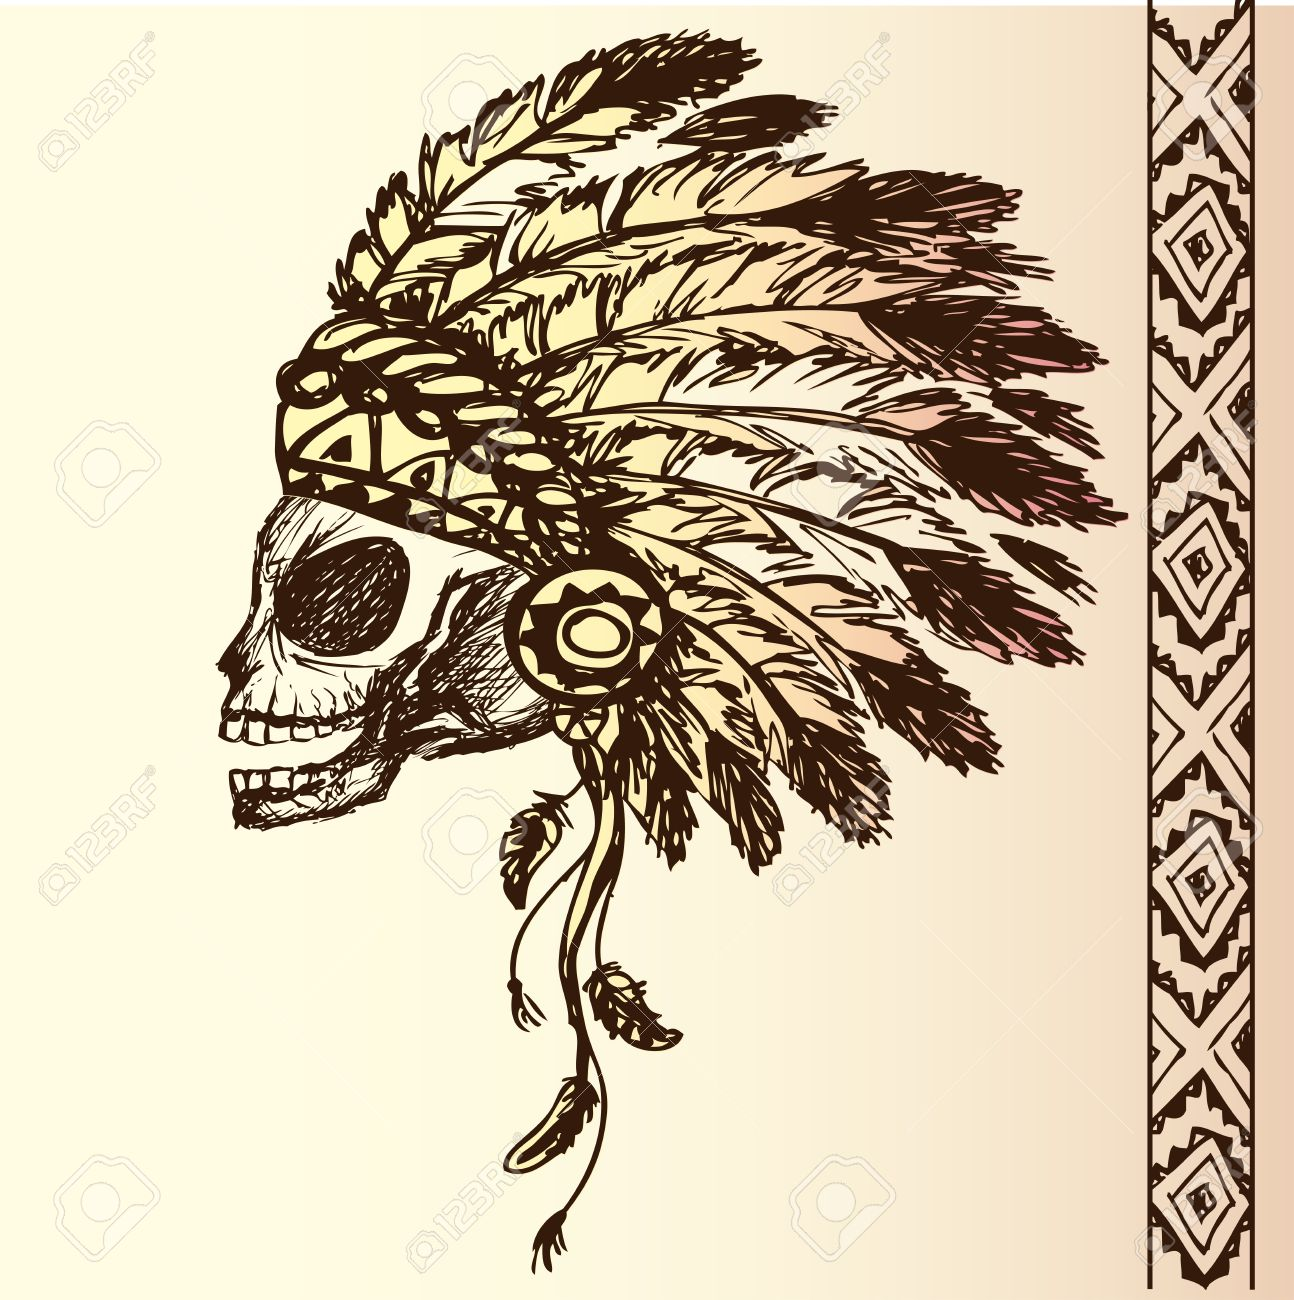 1294x1300 Native American Indian Chief Headdress (Indian Chief Mascot